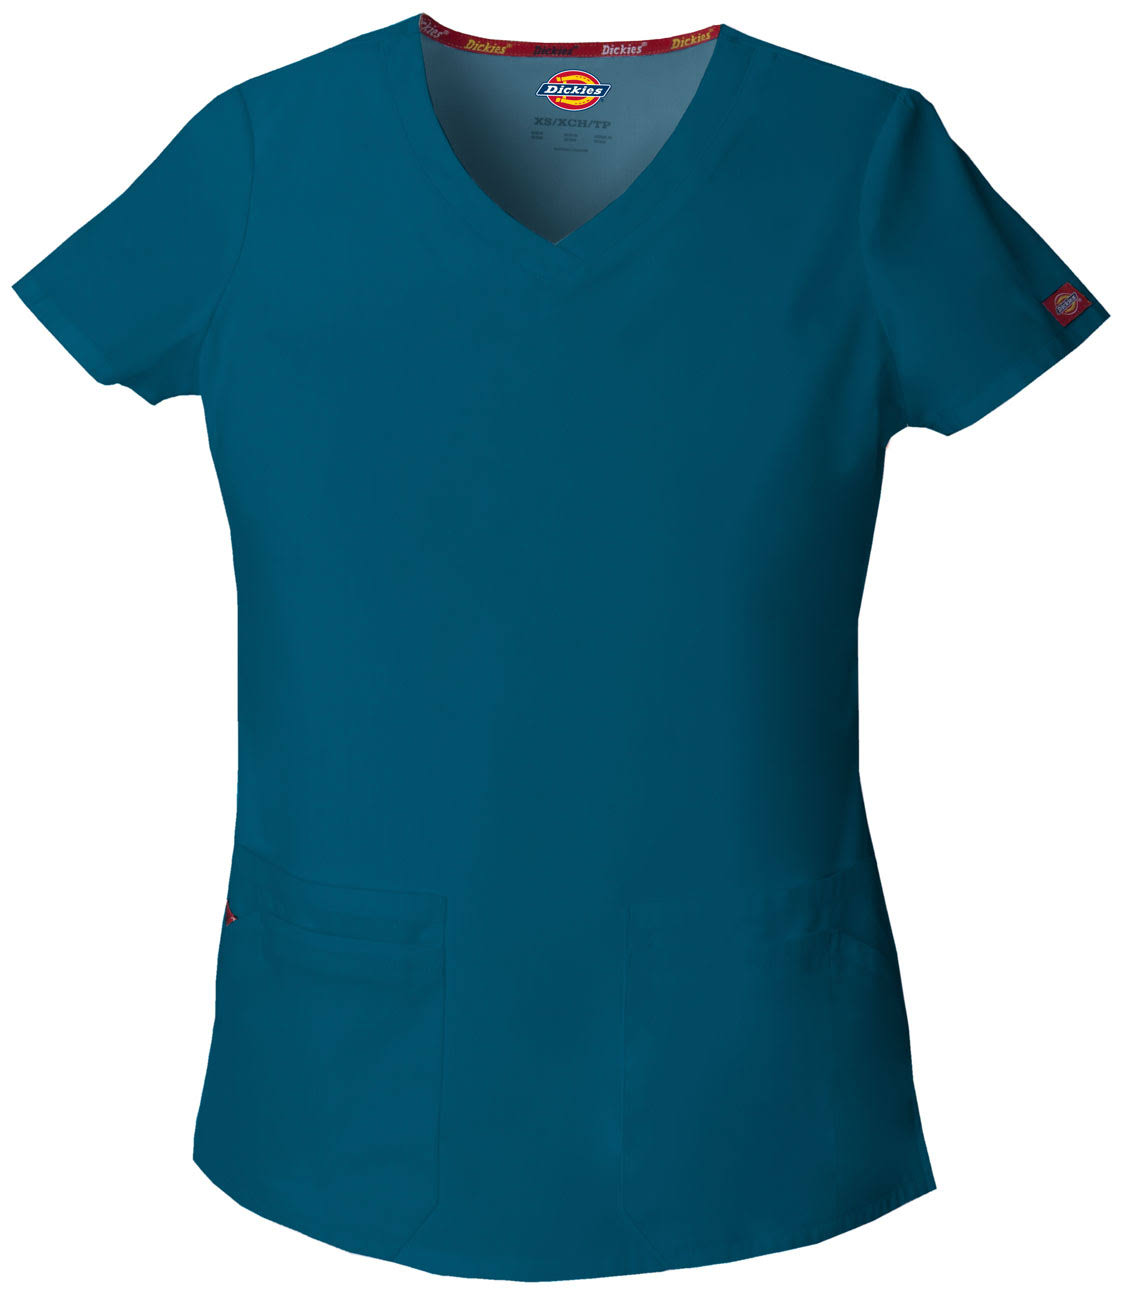 Dickies Signature V Neck Scrub Top - Caribbean Blue, Small